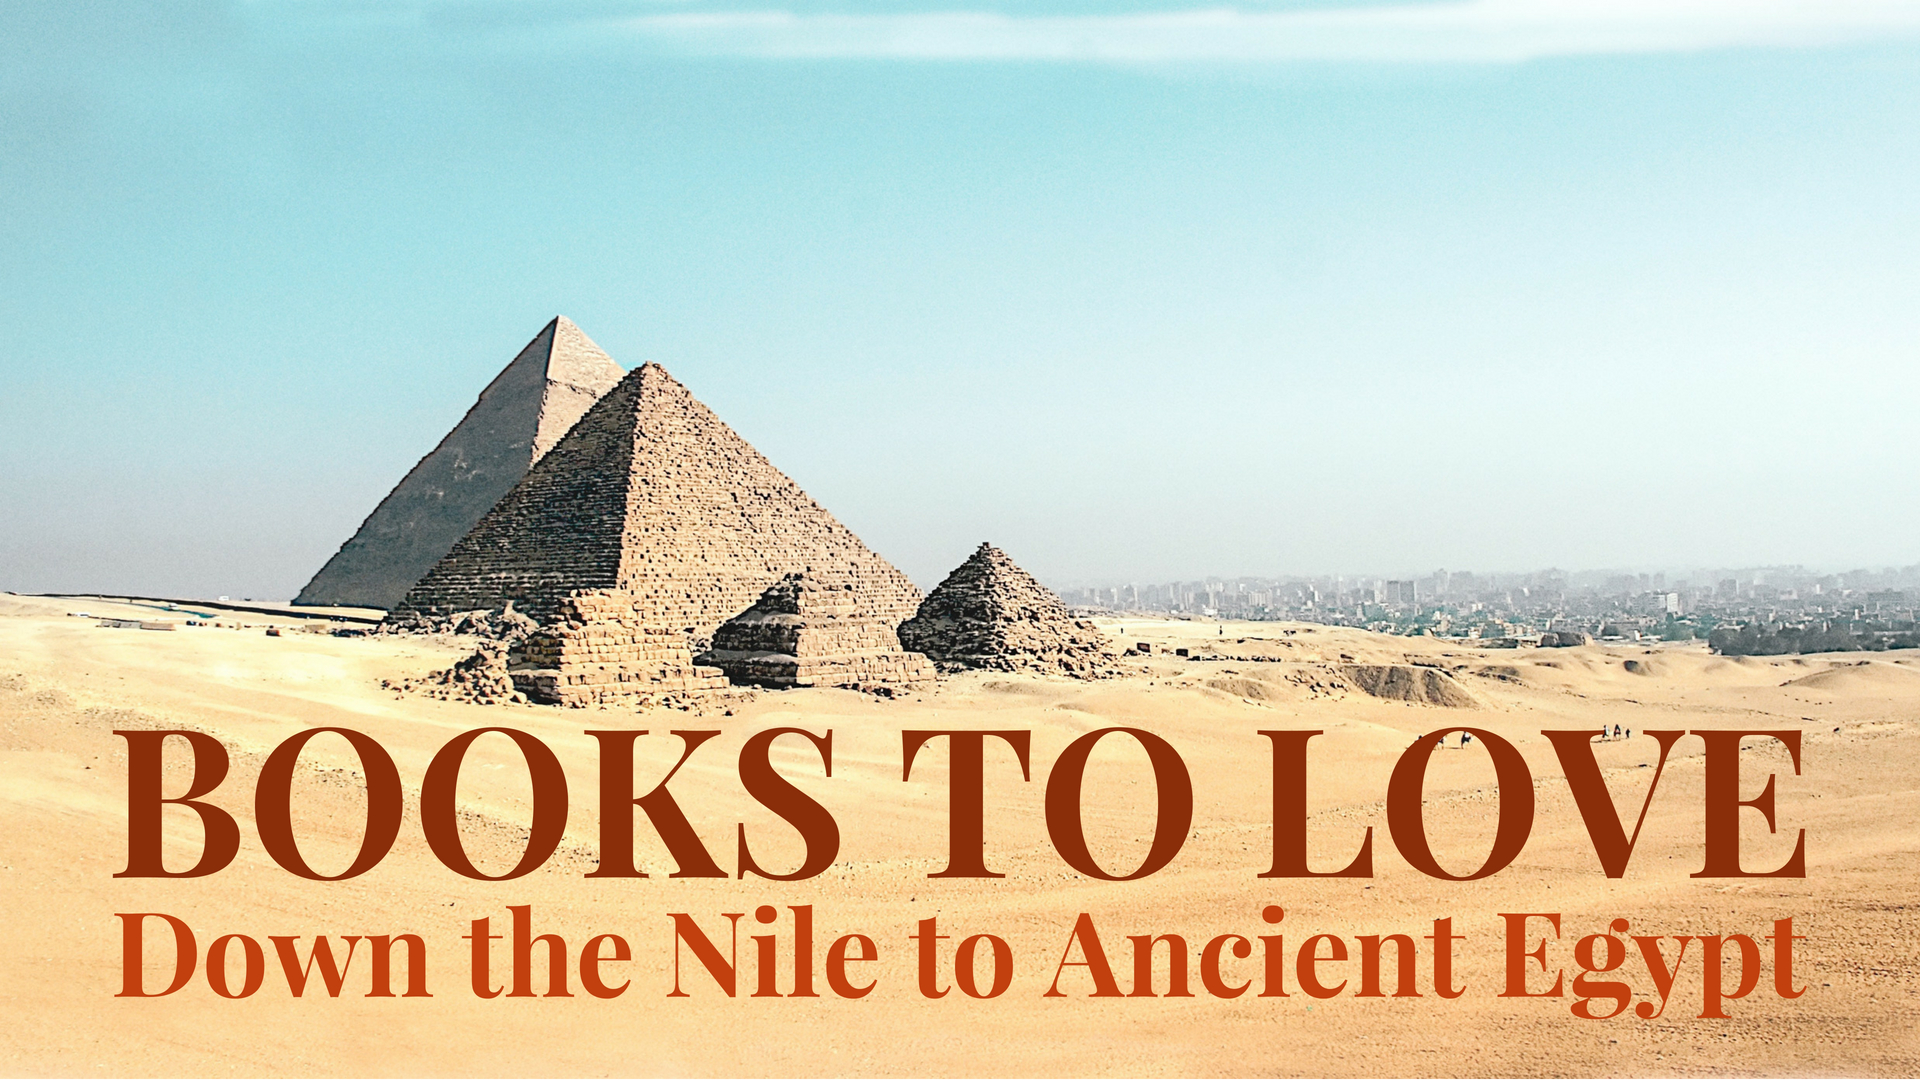 banner-books-to-love-down-the-nile-to-ancient-egypt.jpg